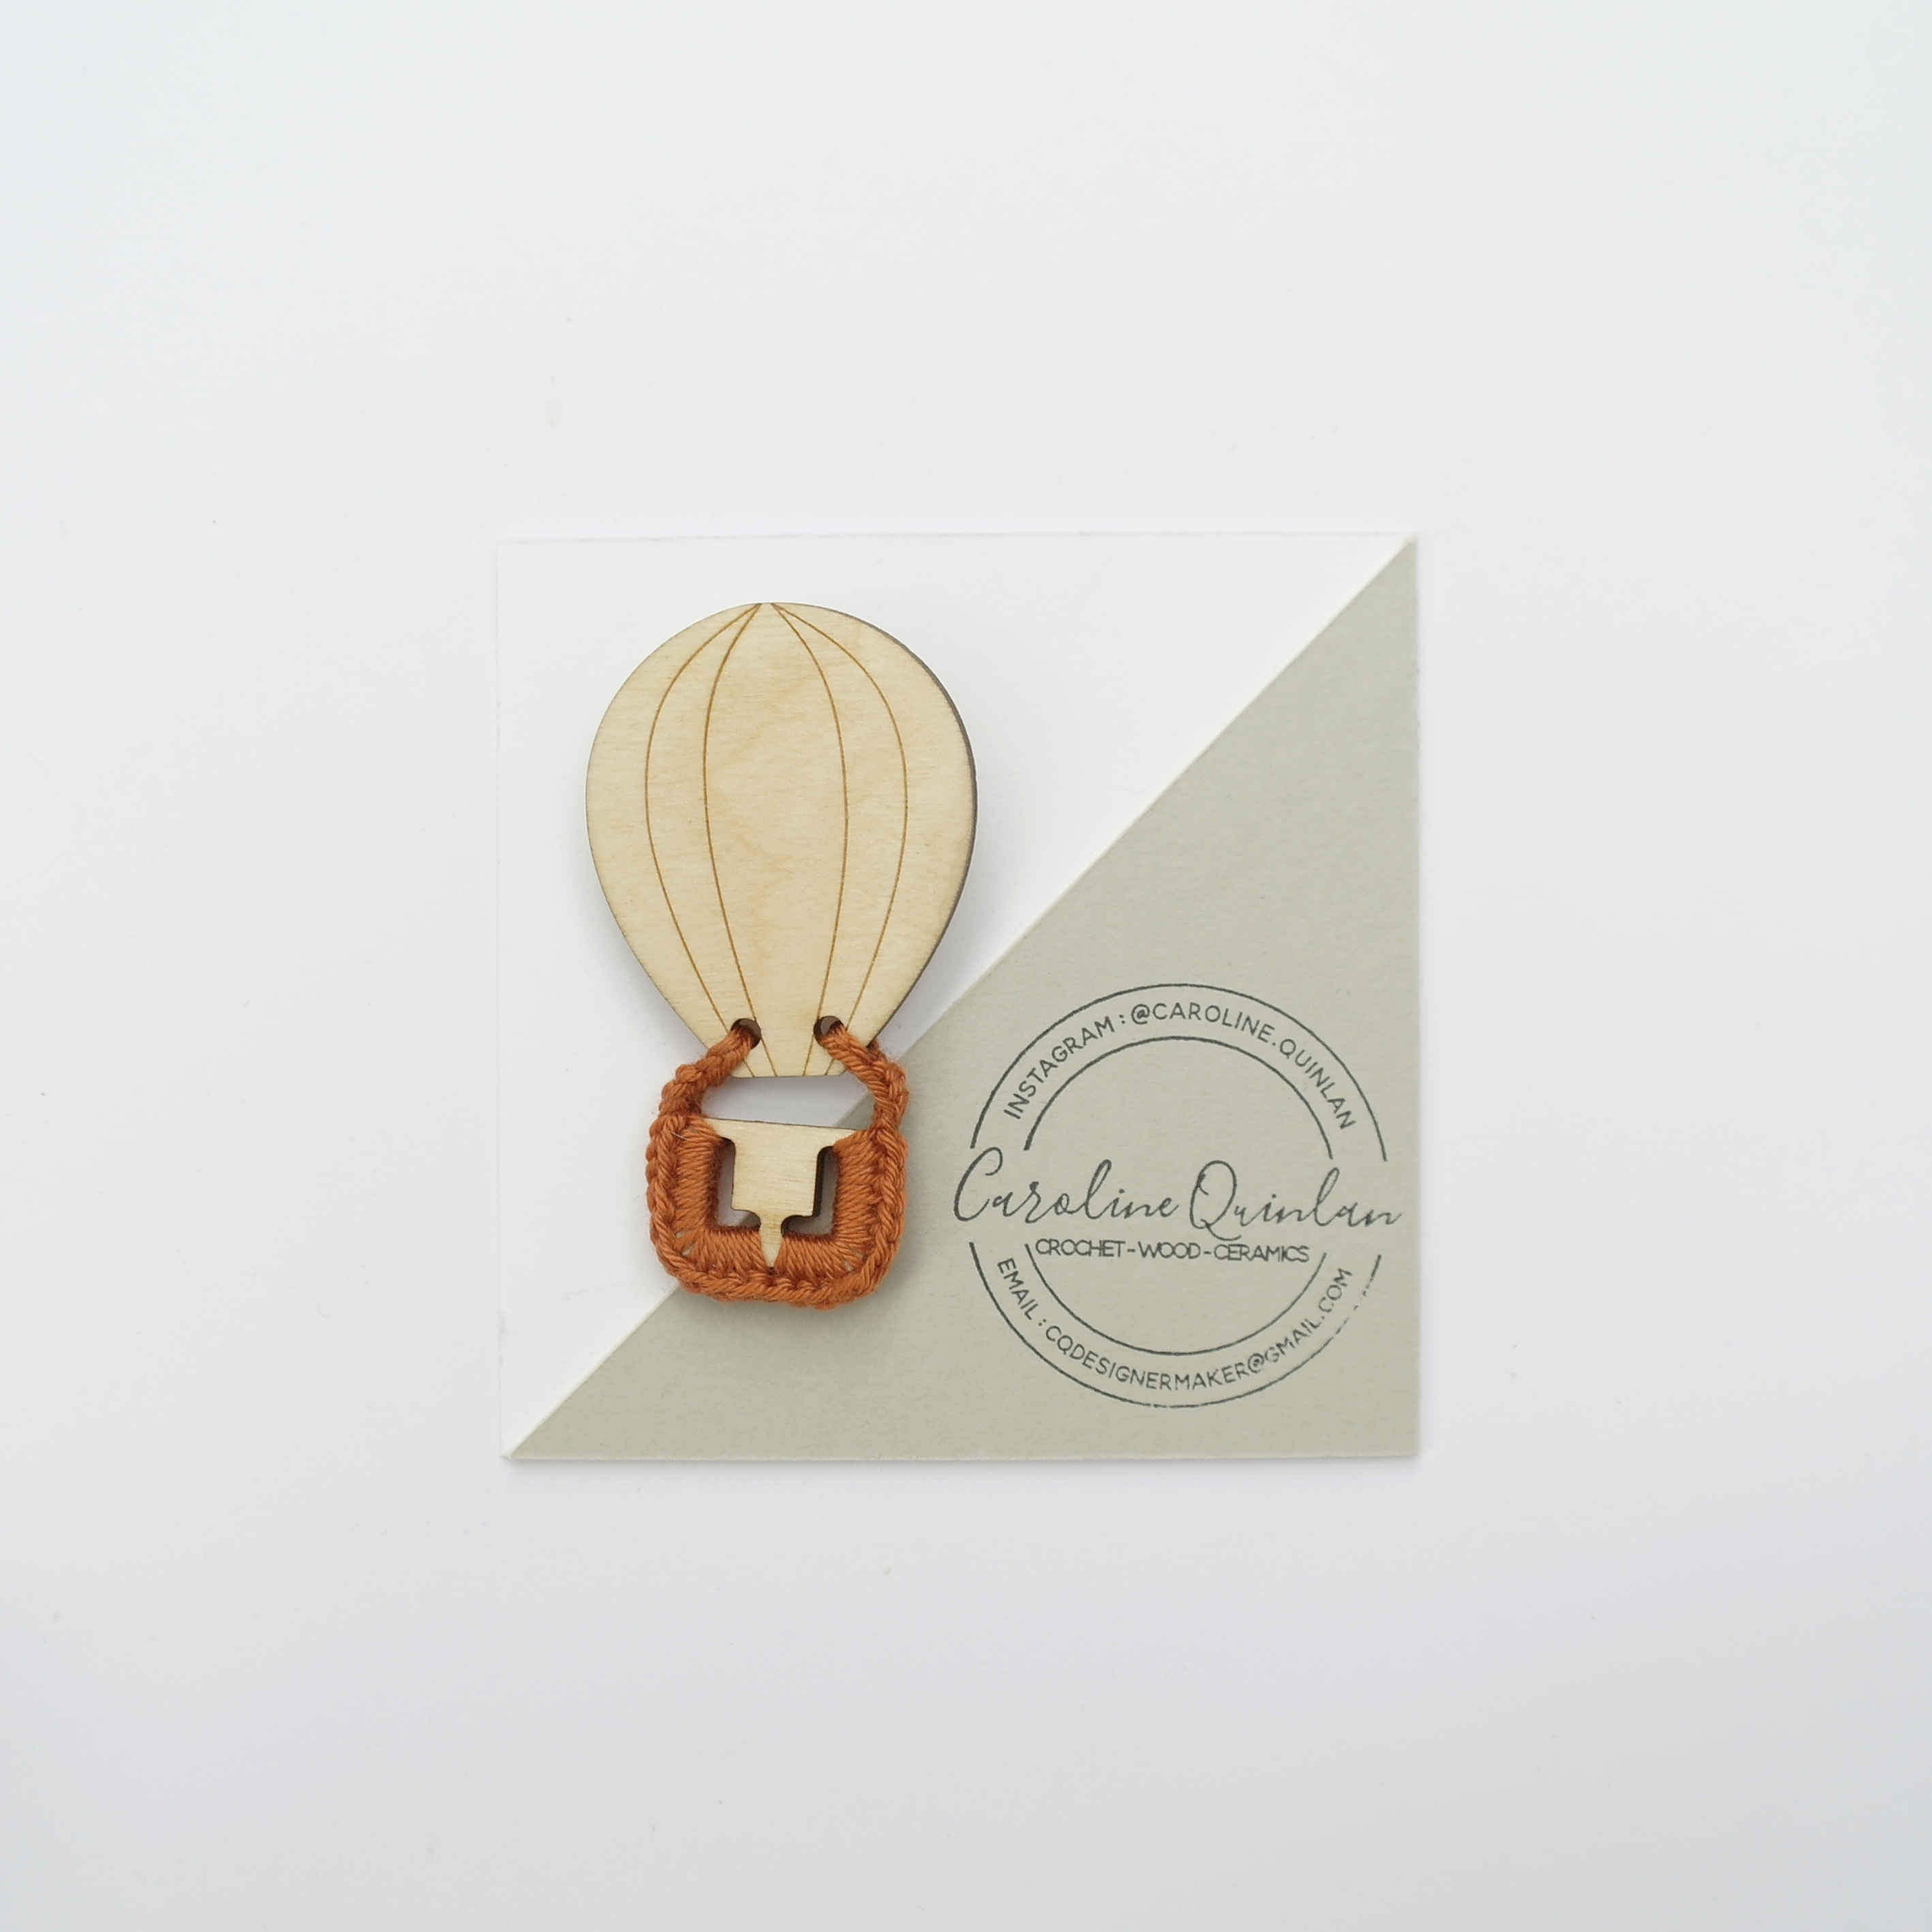 Hot Air Balloon Brooch - Wood with Crochet